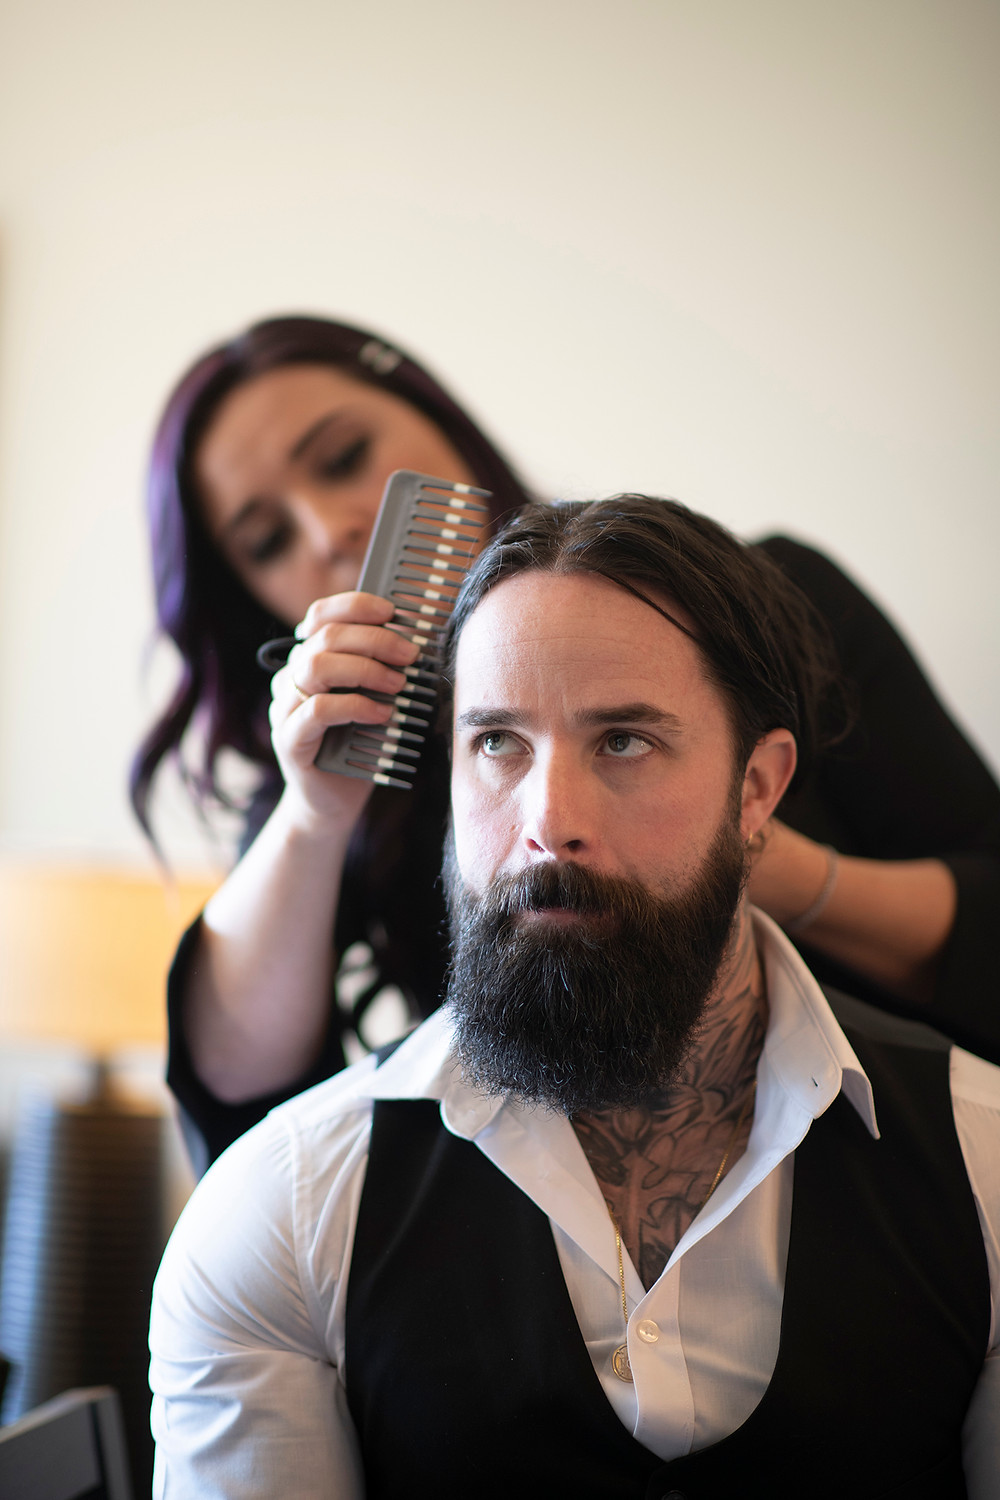 Groom gets ready before eloping in Ucluelet. Photographed by Kaitlyn Shea.